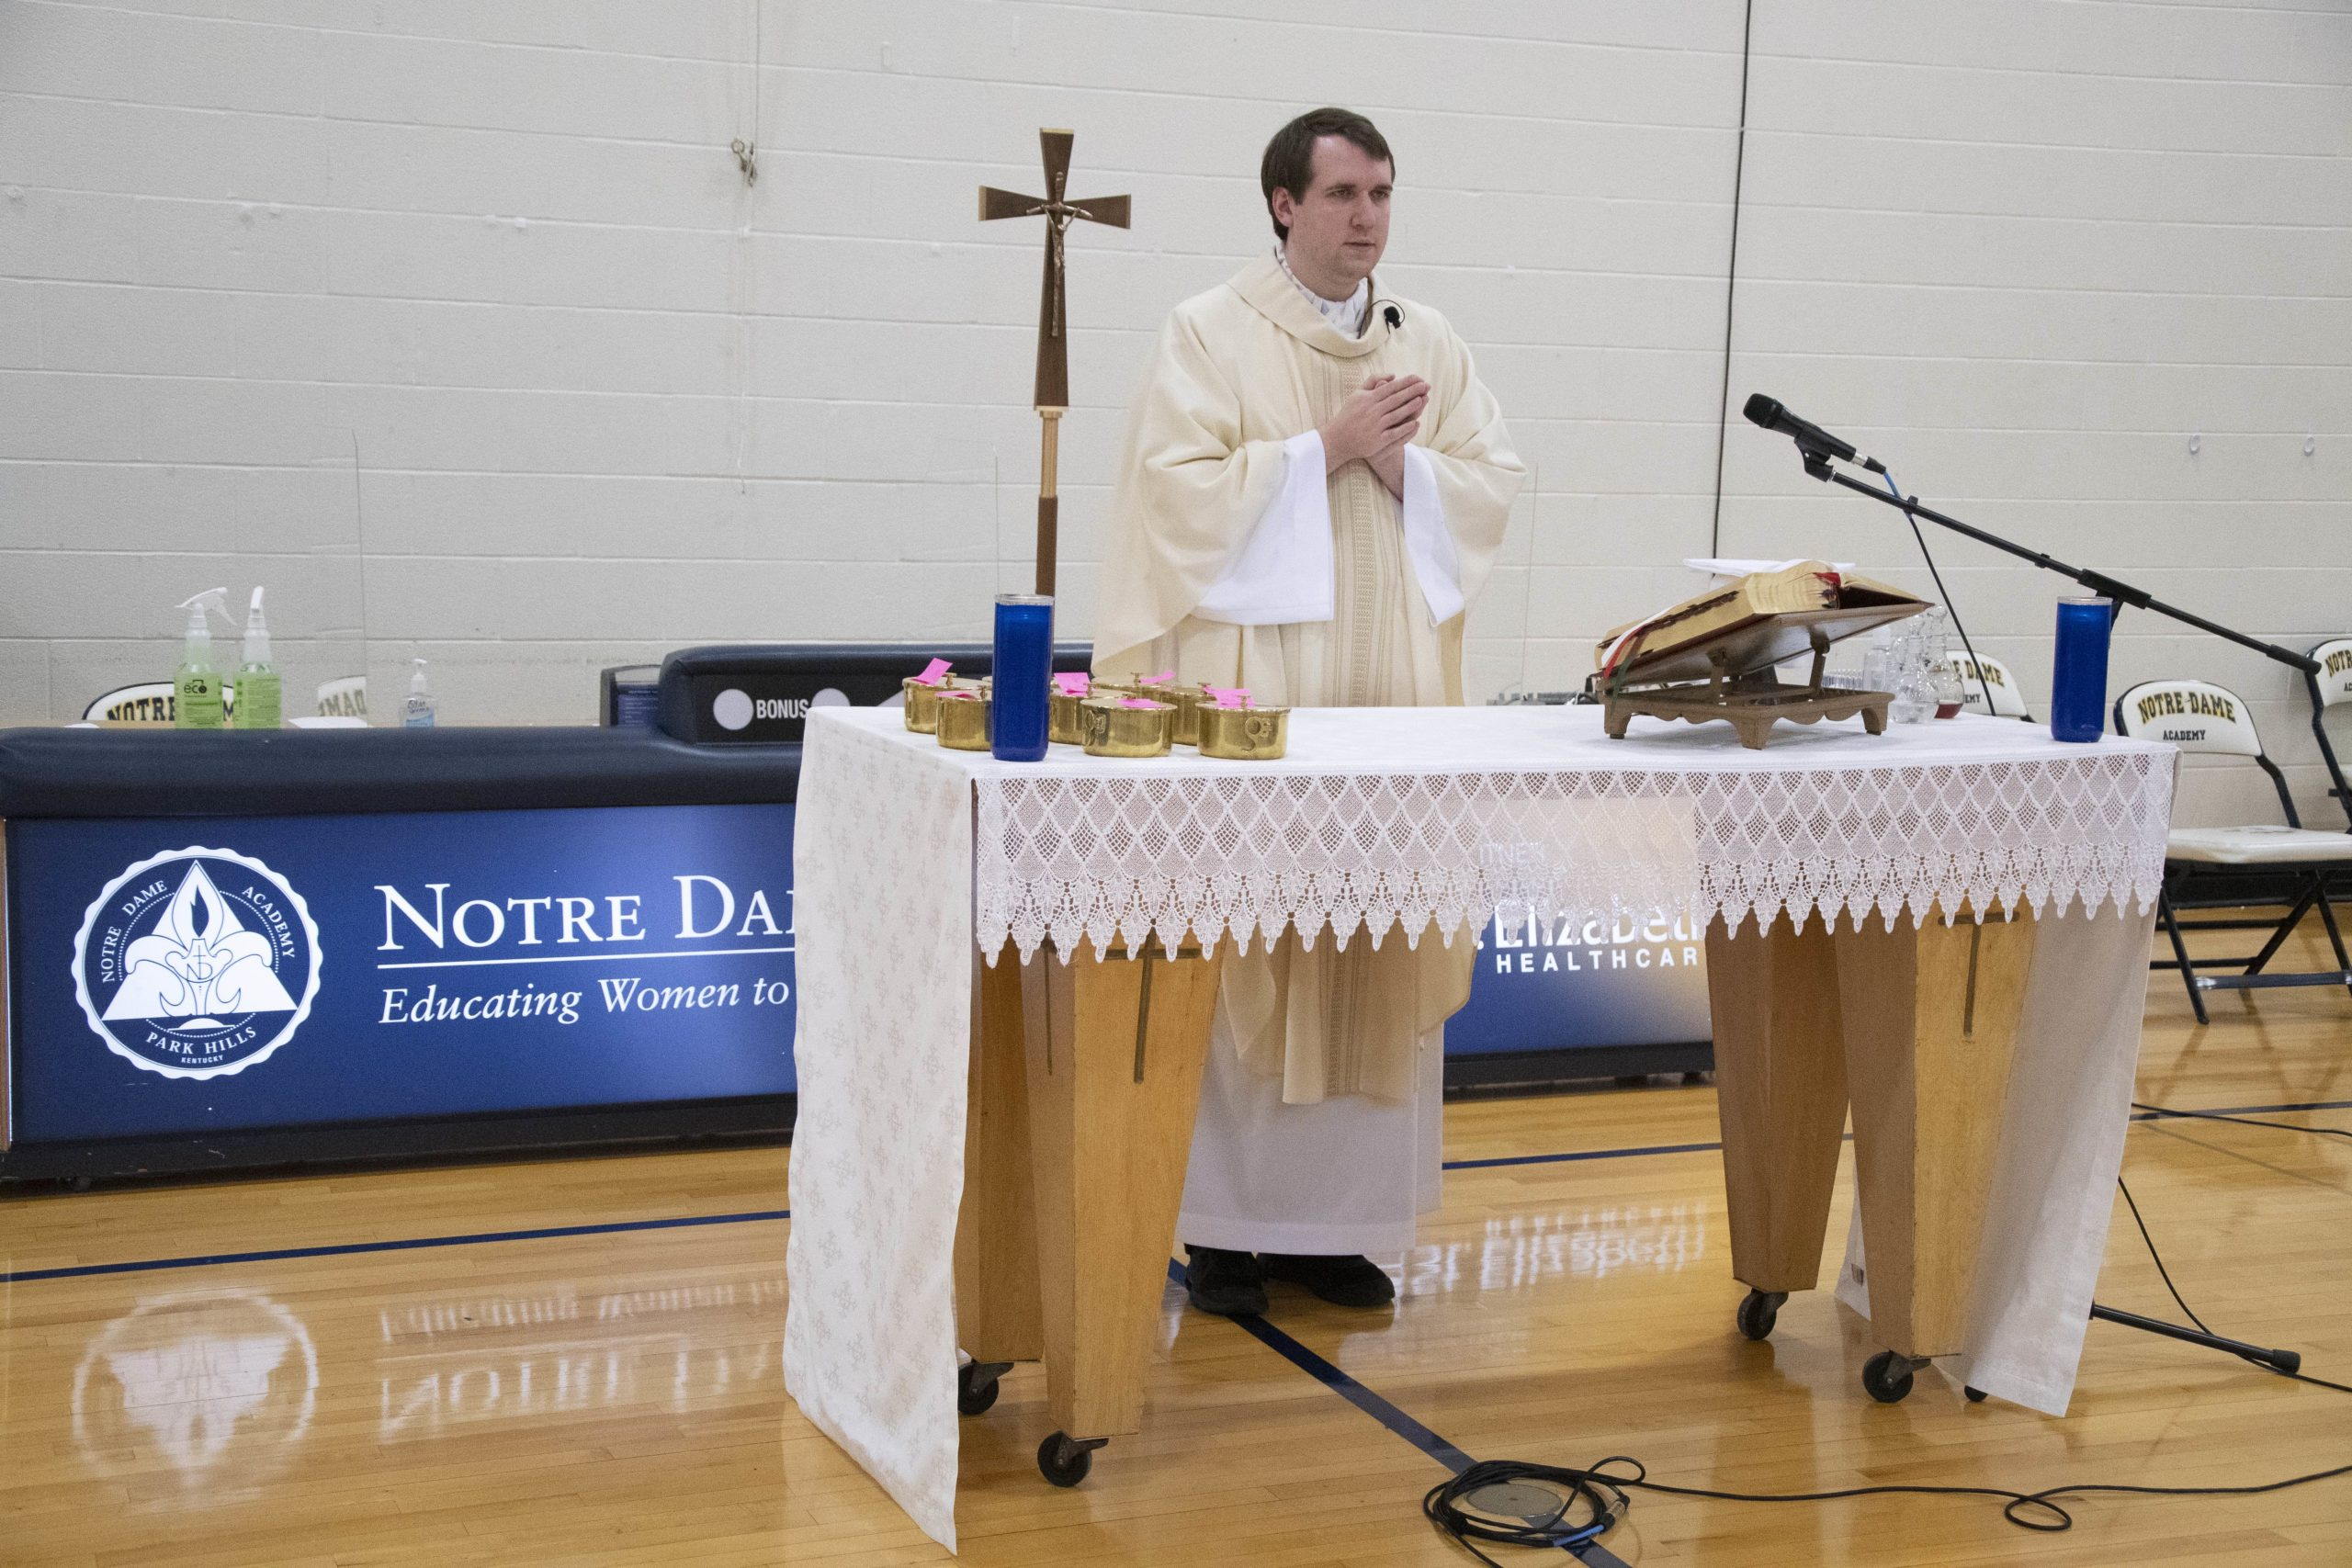 The chaplain saying Mass in the gym on 2021 at the Notre Dame Academy catholic all-girls school in Covington, Northern Kentucky.